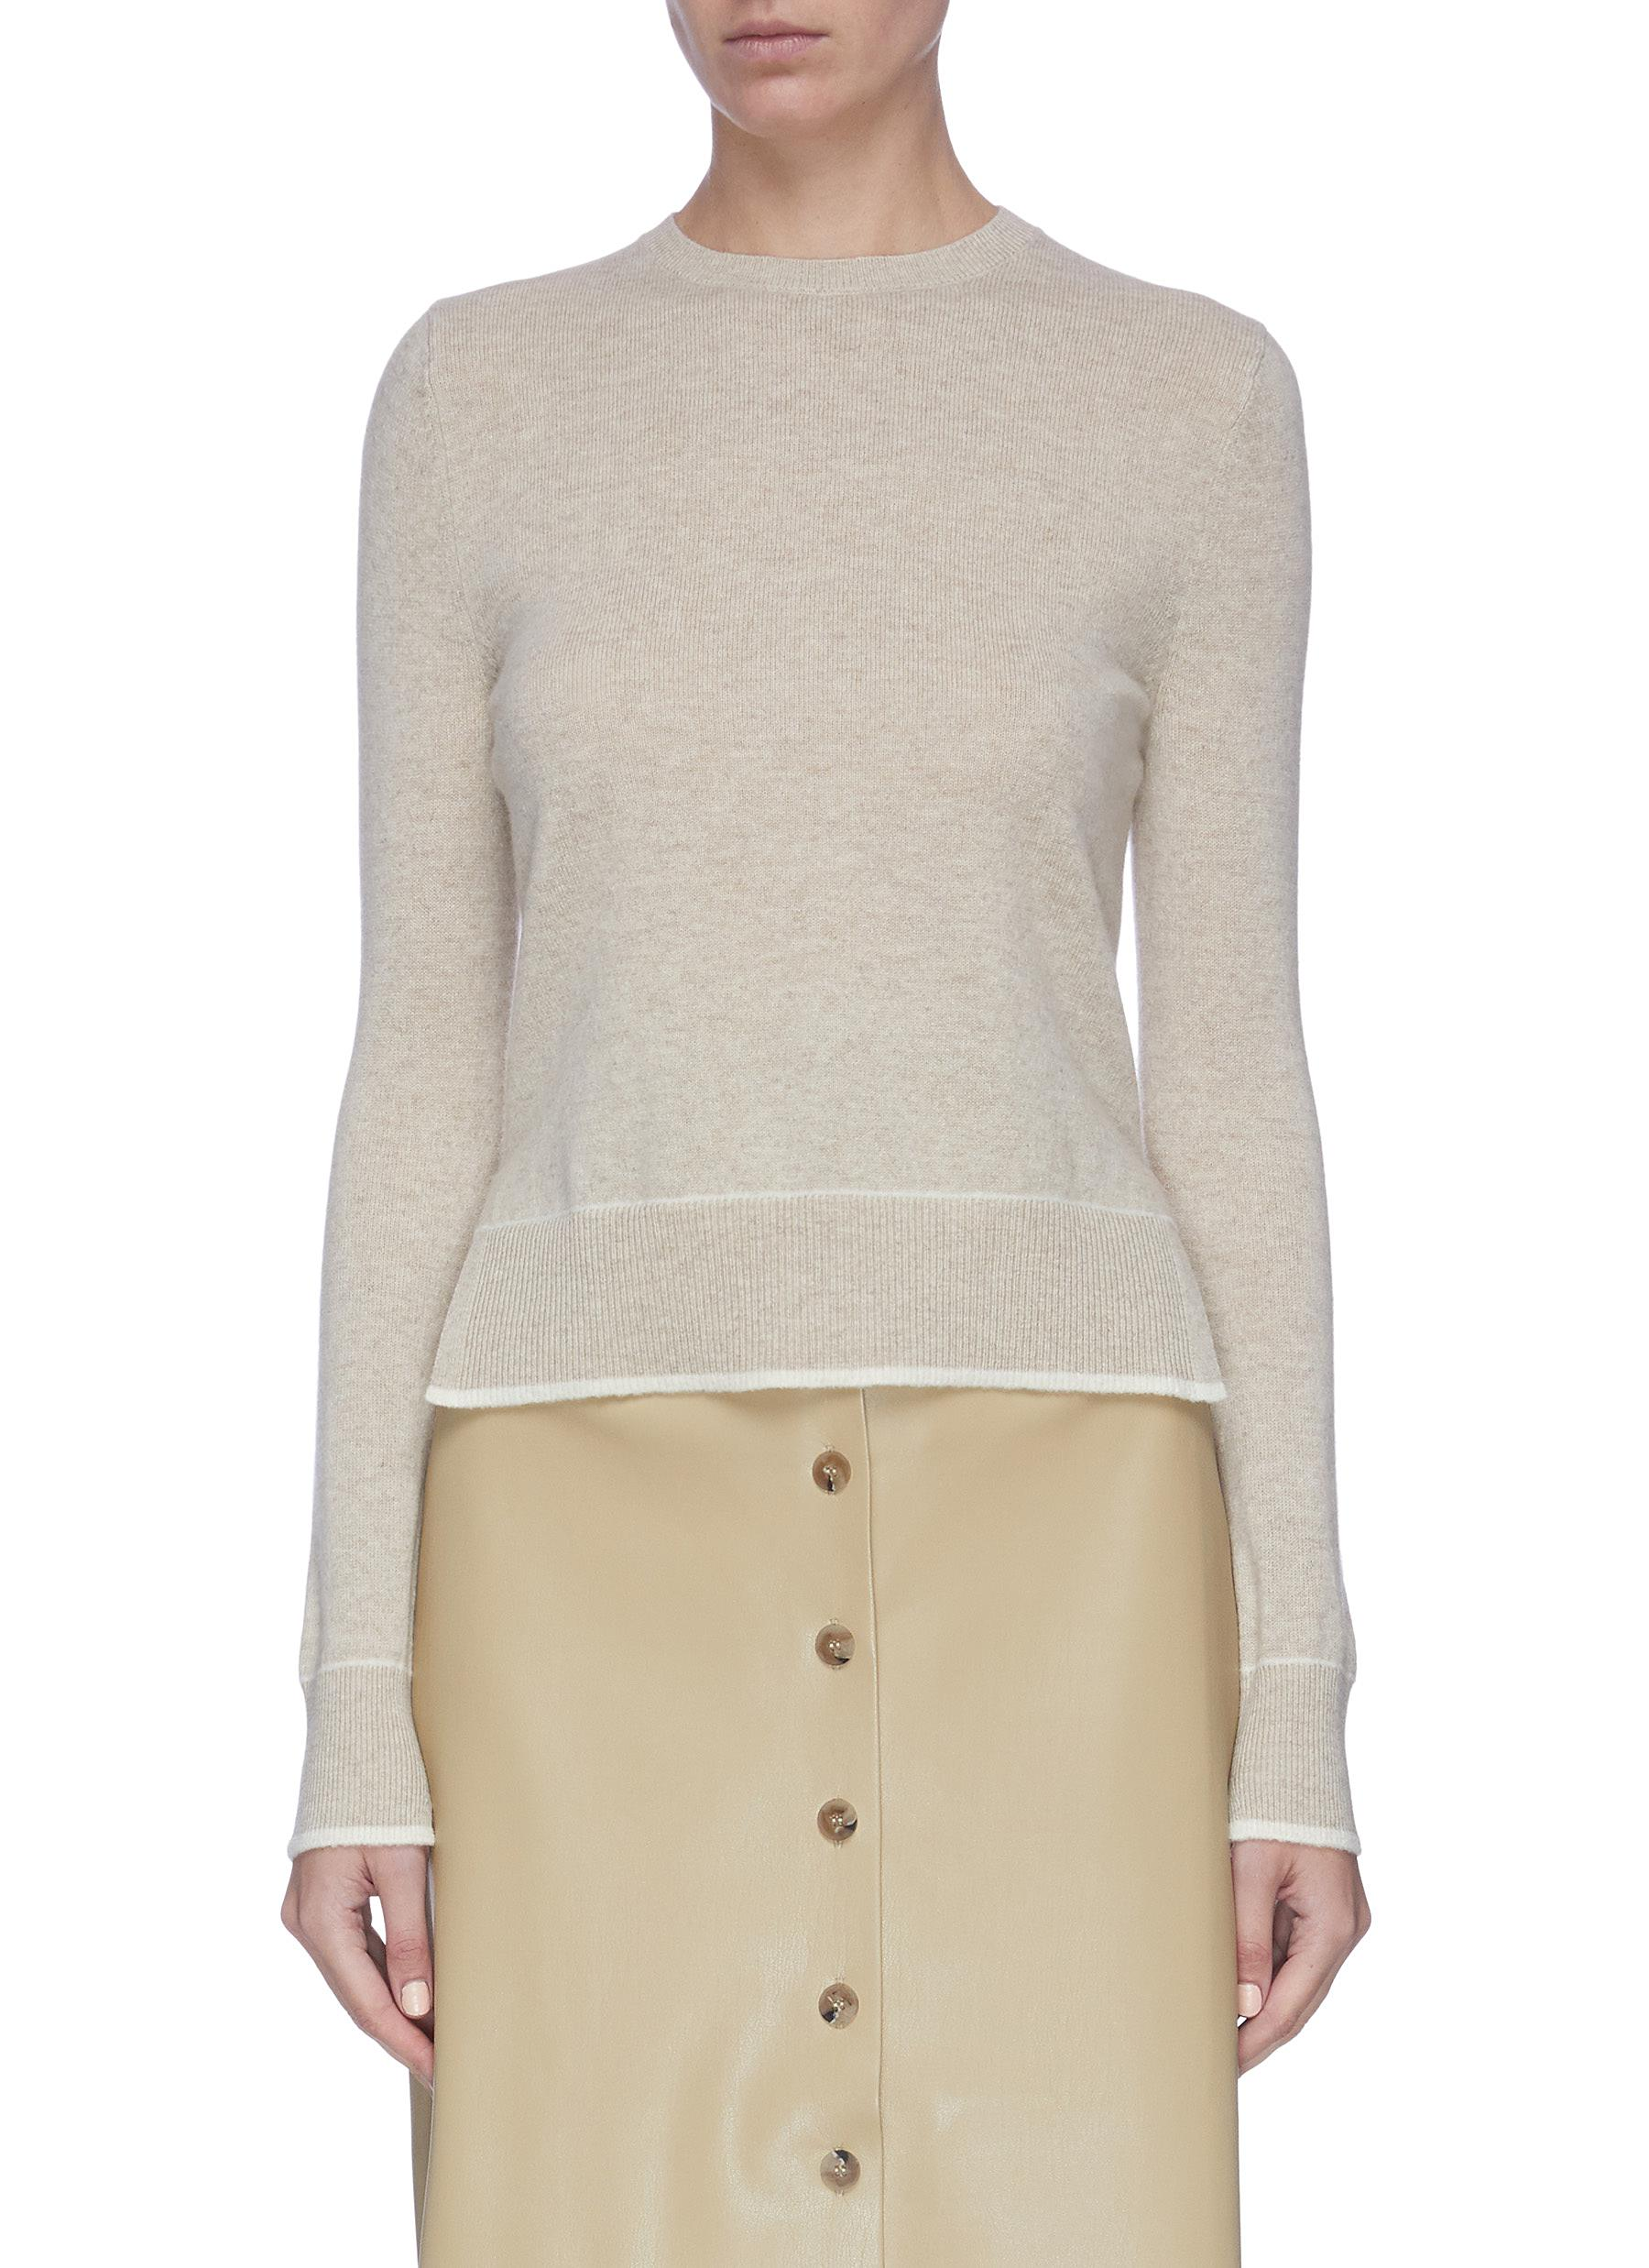 Buy Equil Knitwear Contrast seam cashmere sweater